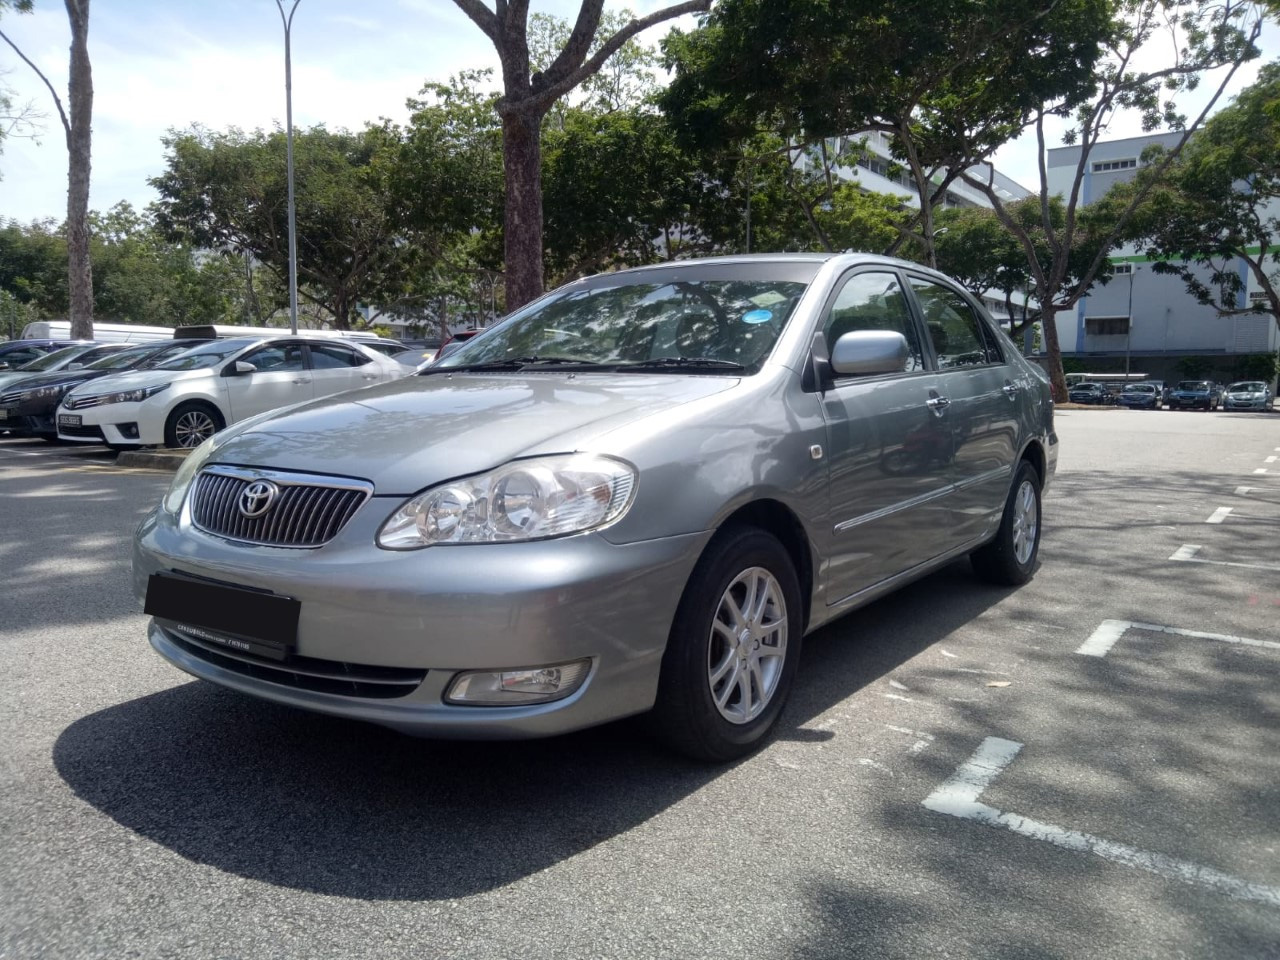 Toyota Corolla Altis (For Rent)